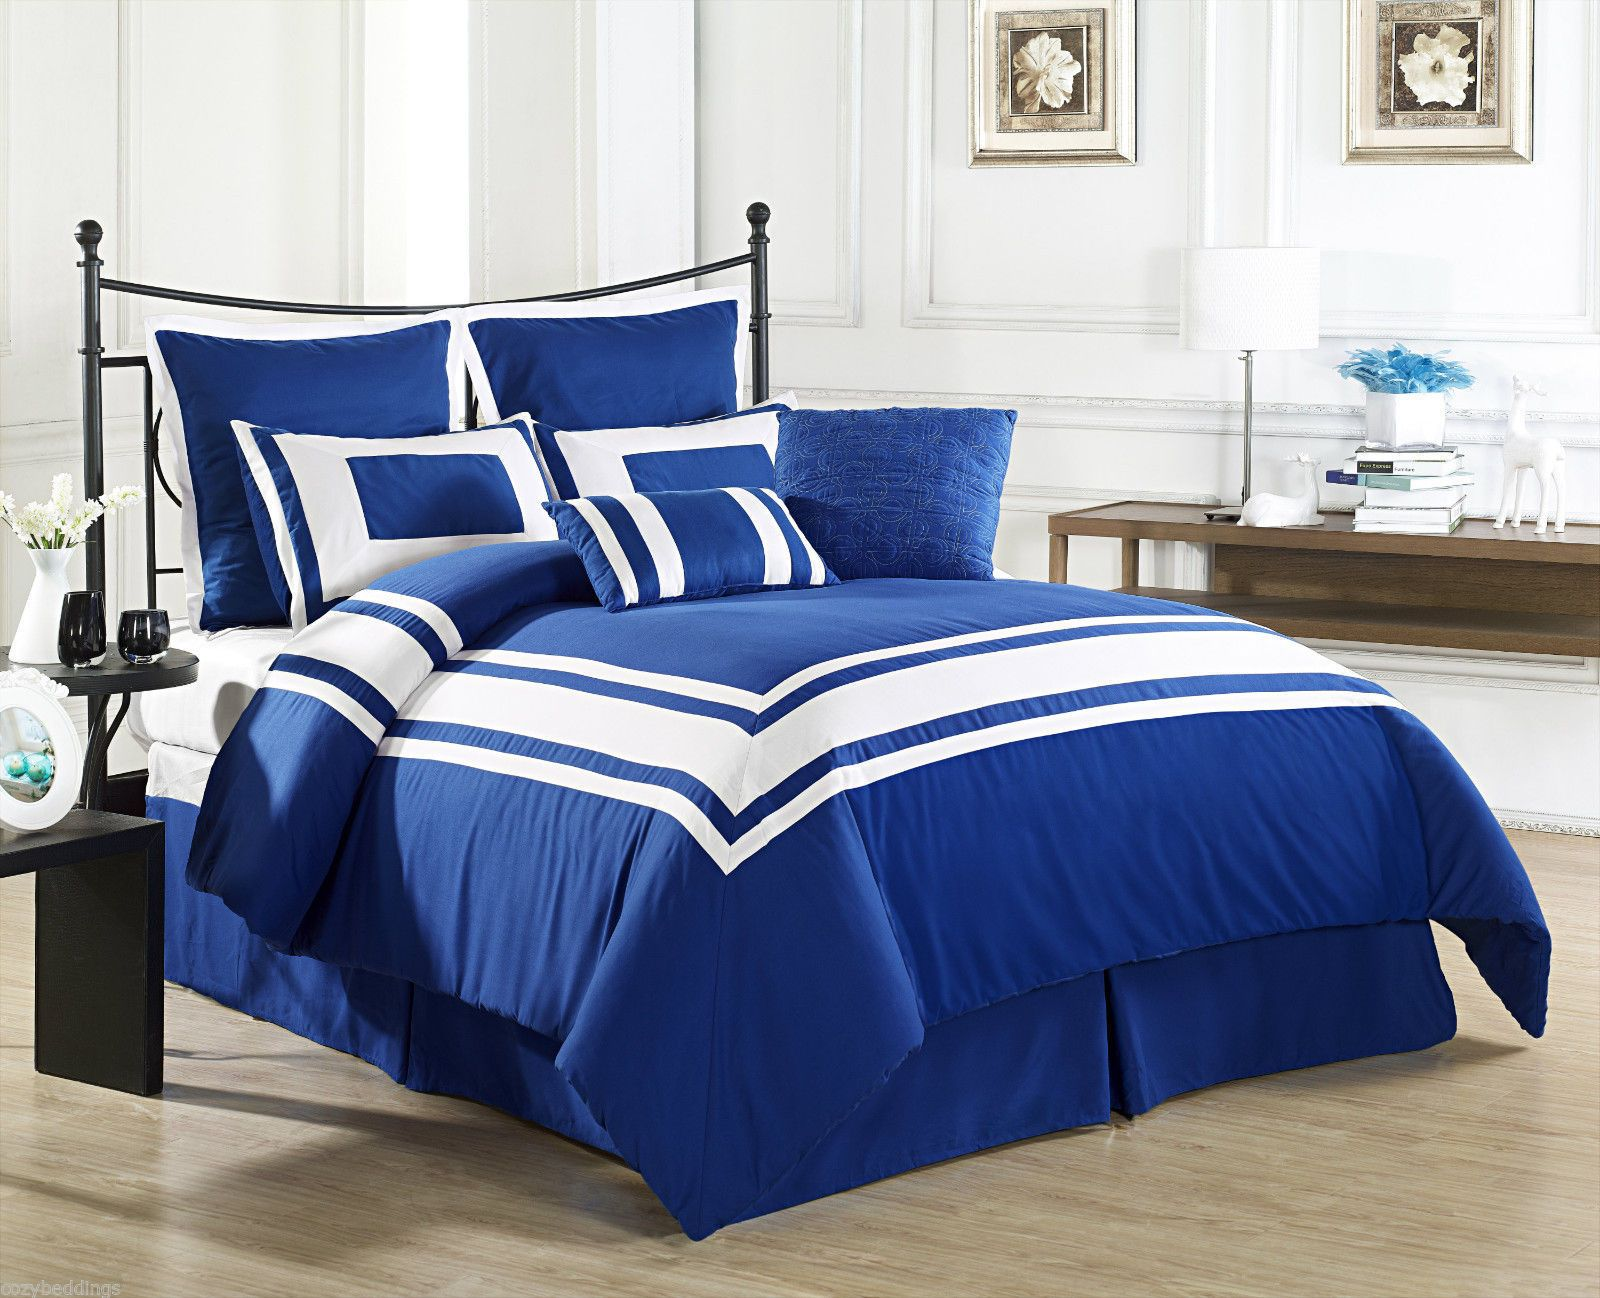 Lux Decor Royal BLUE QUEEN Size Bed 8 Piece forter Set White